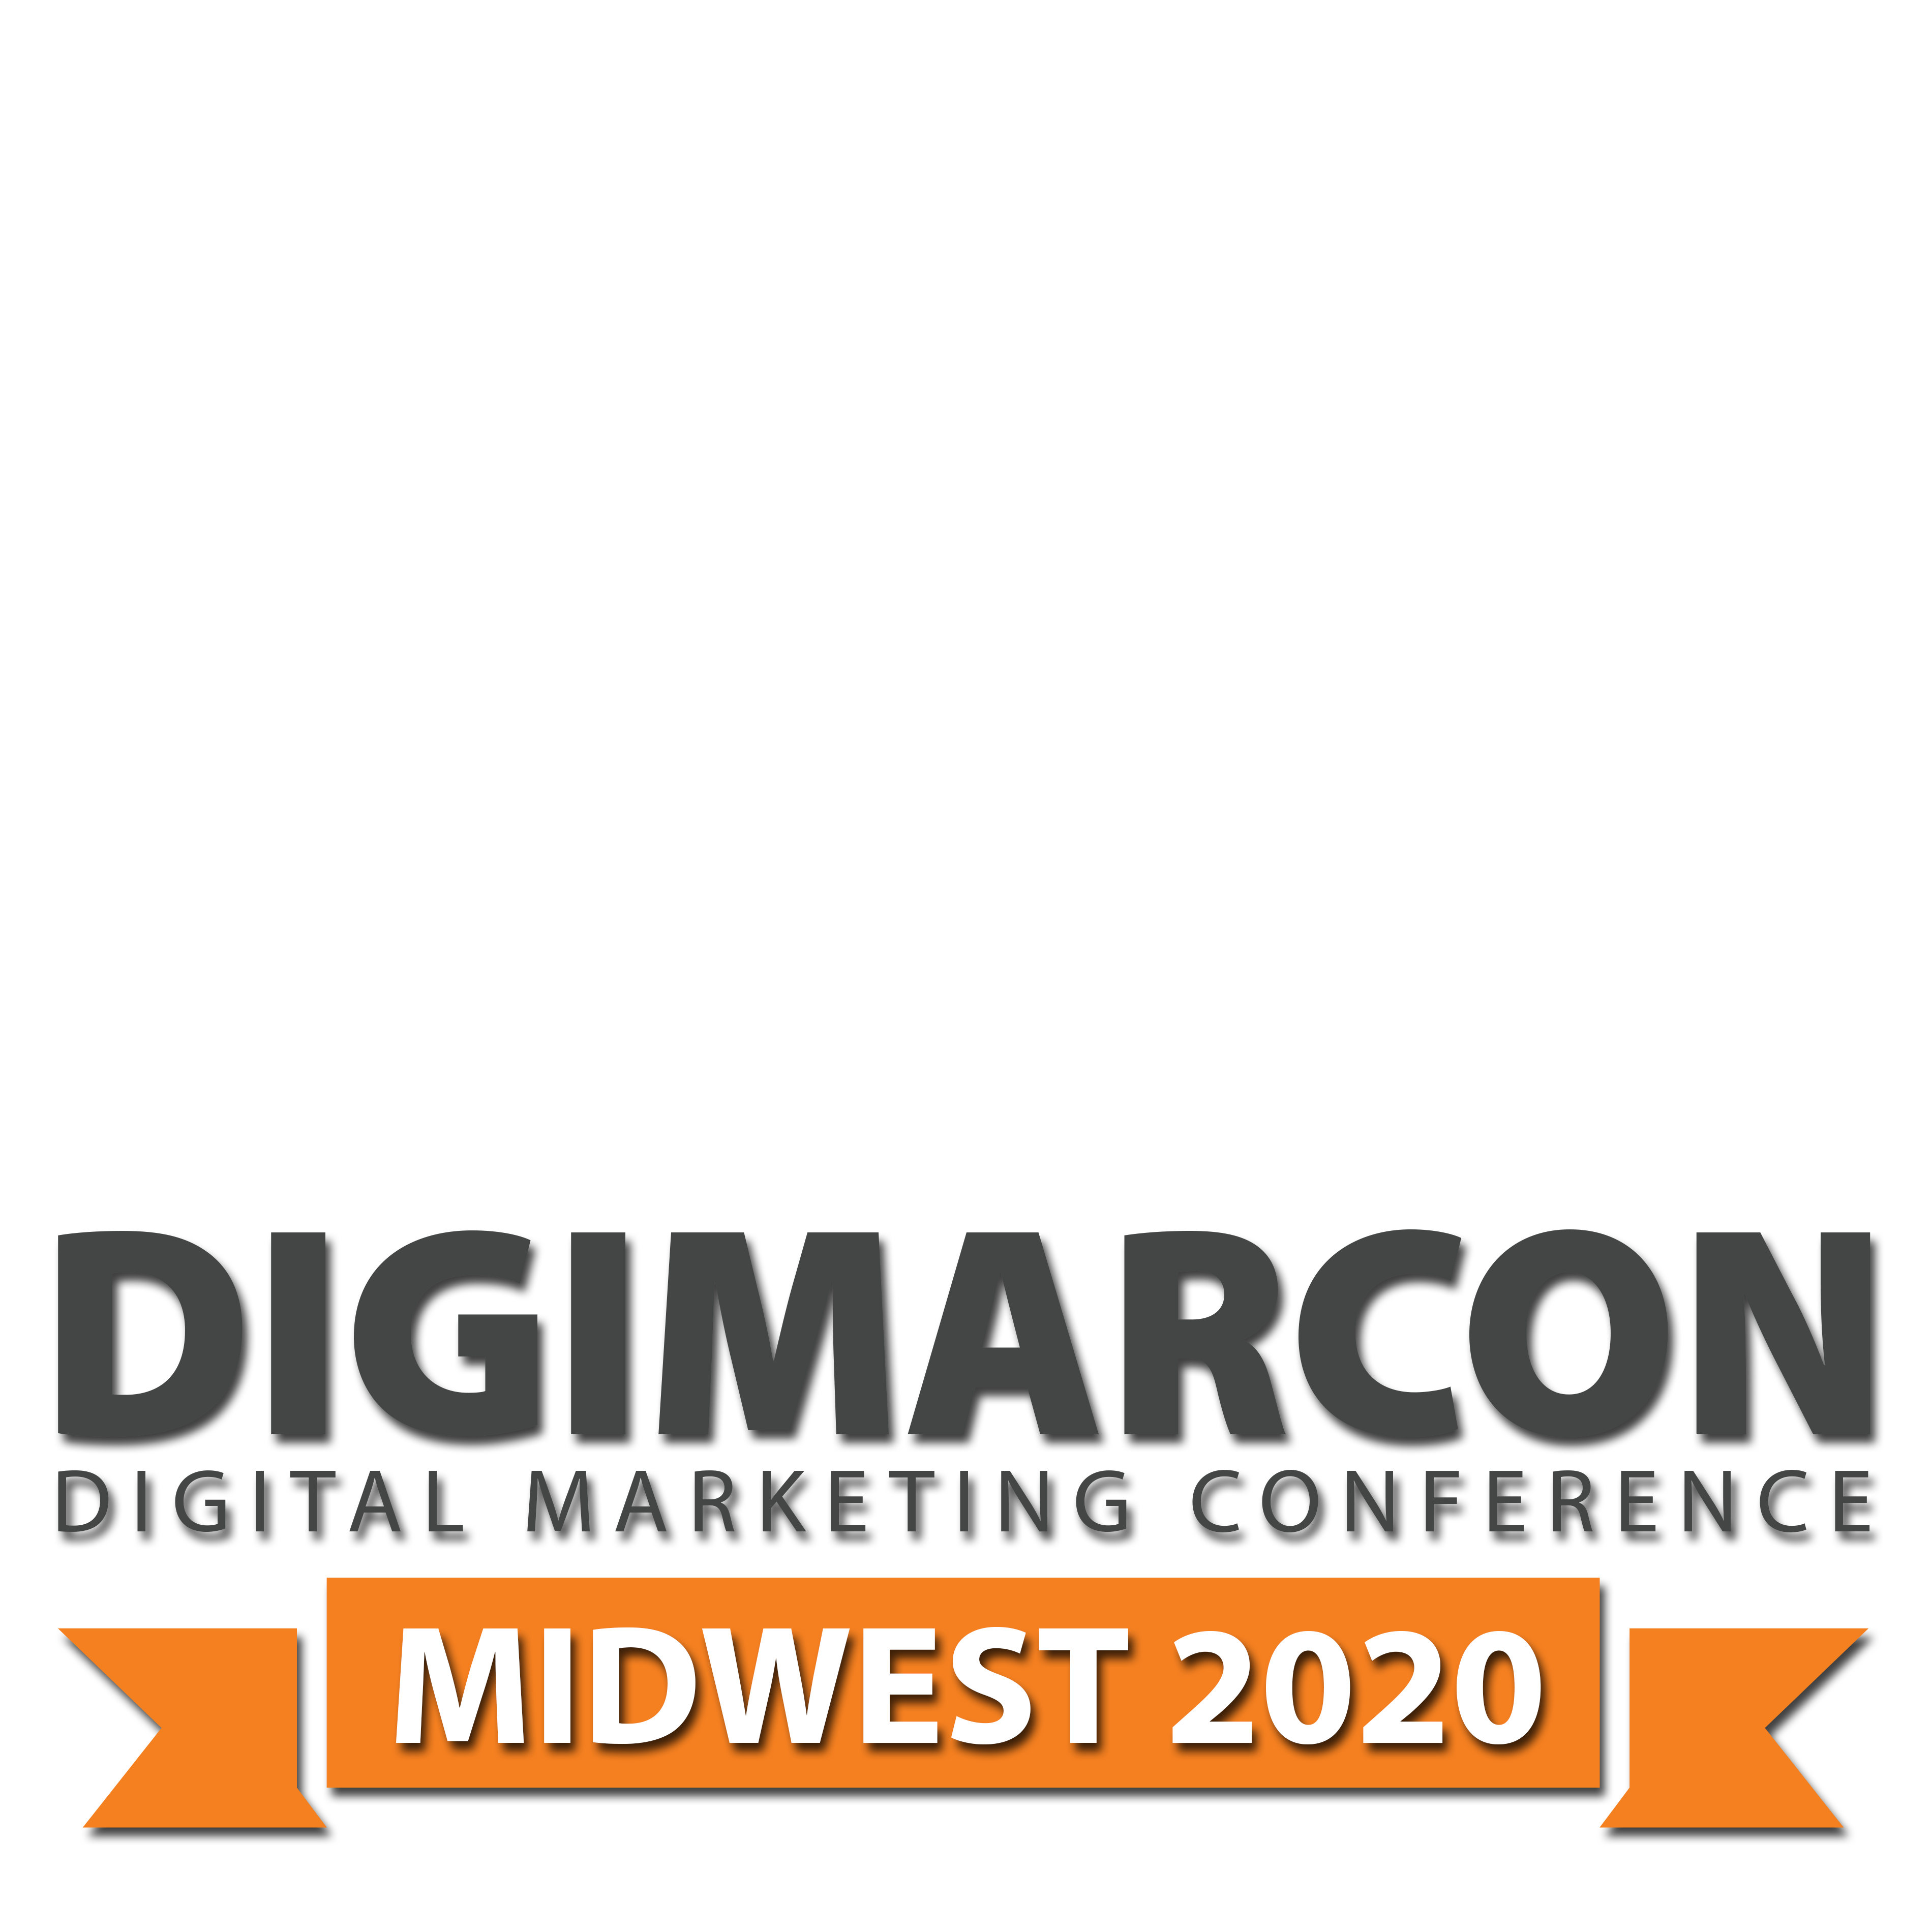 DigiMarCon Midwest 2020 – Digital Marketing Conference & Exhibition